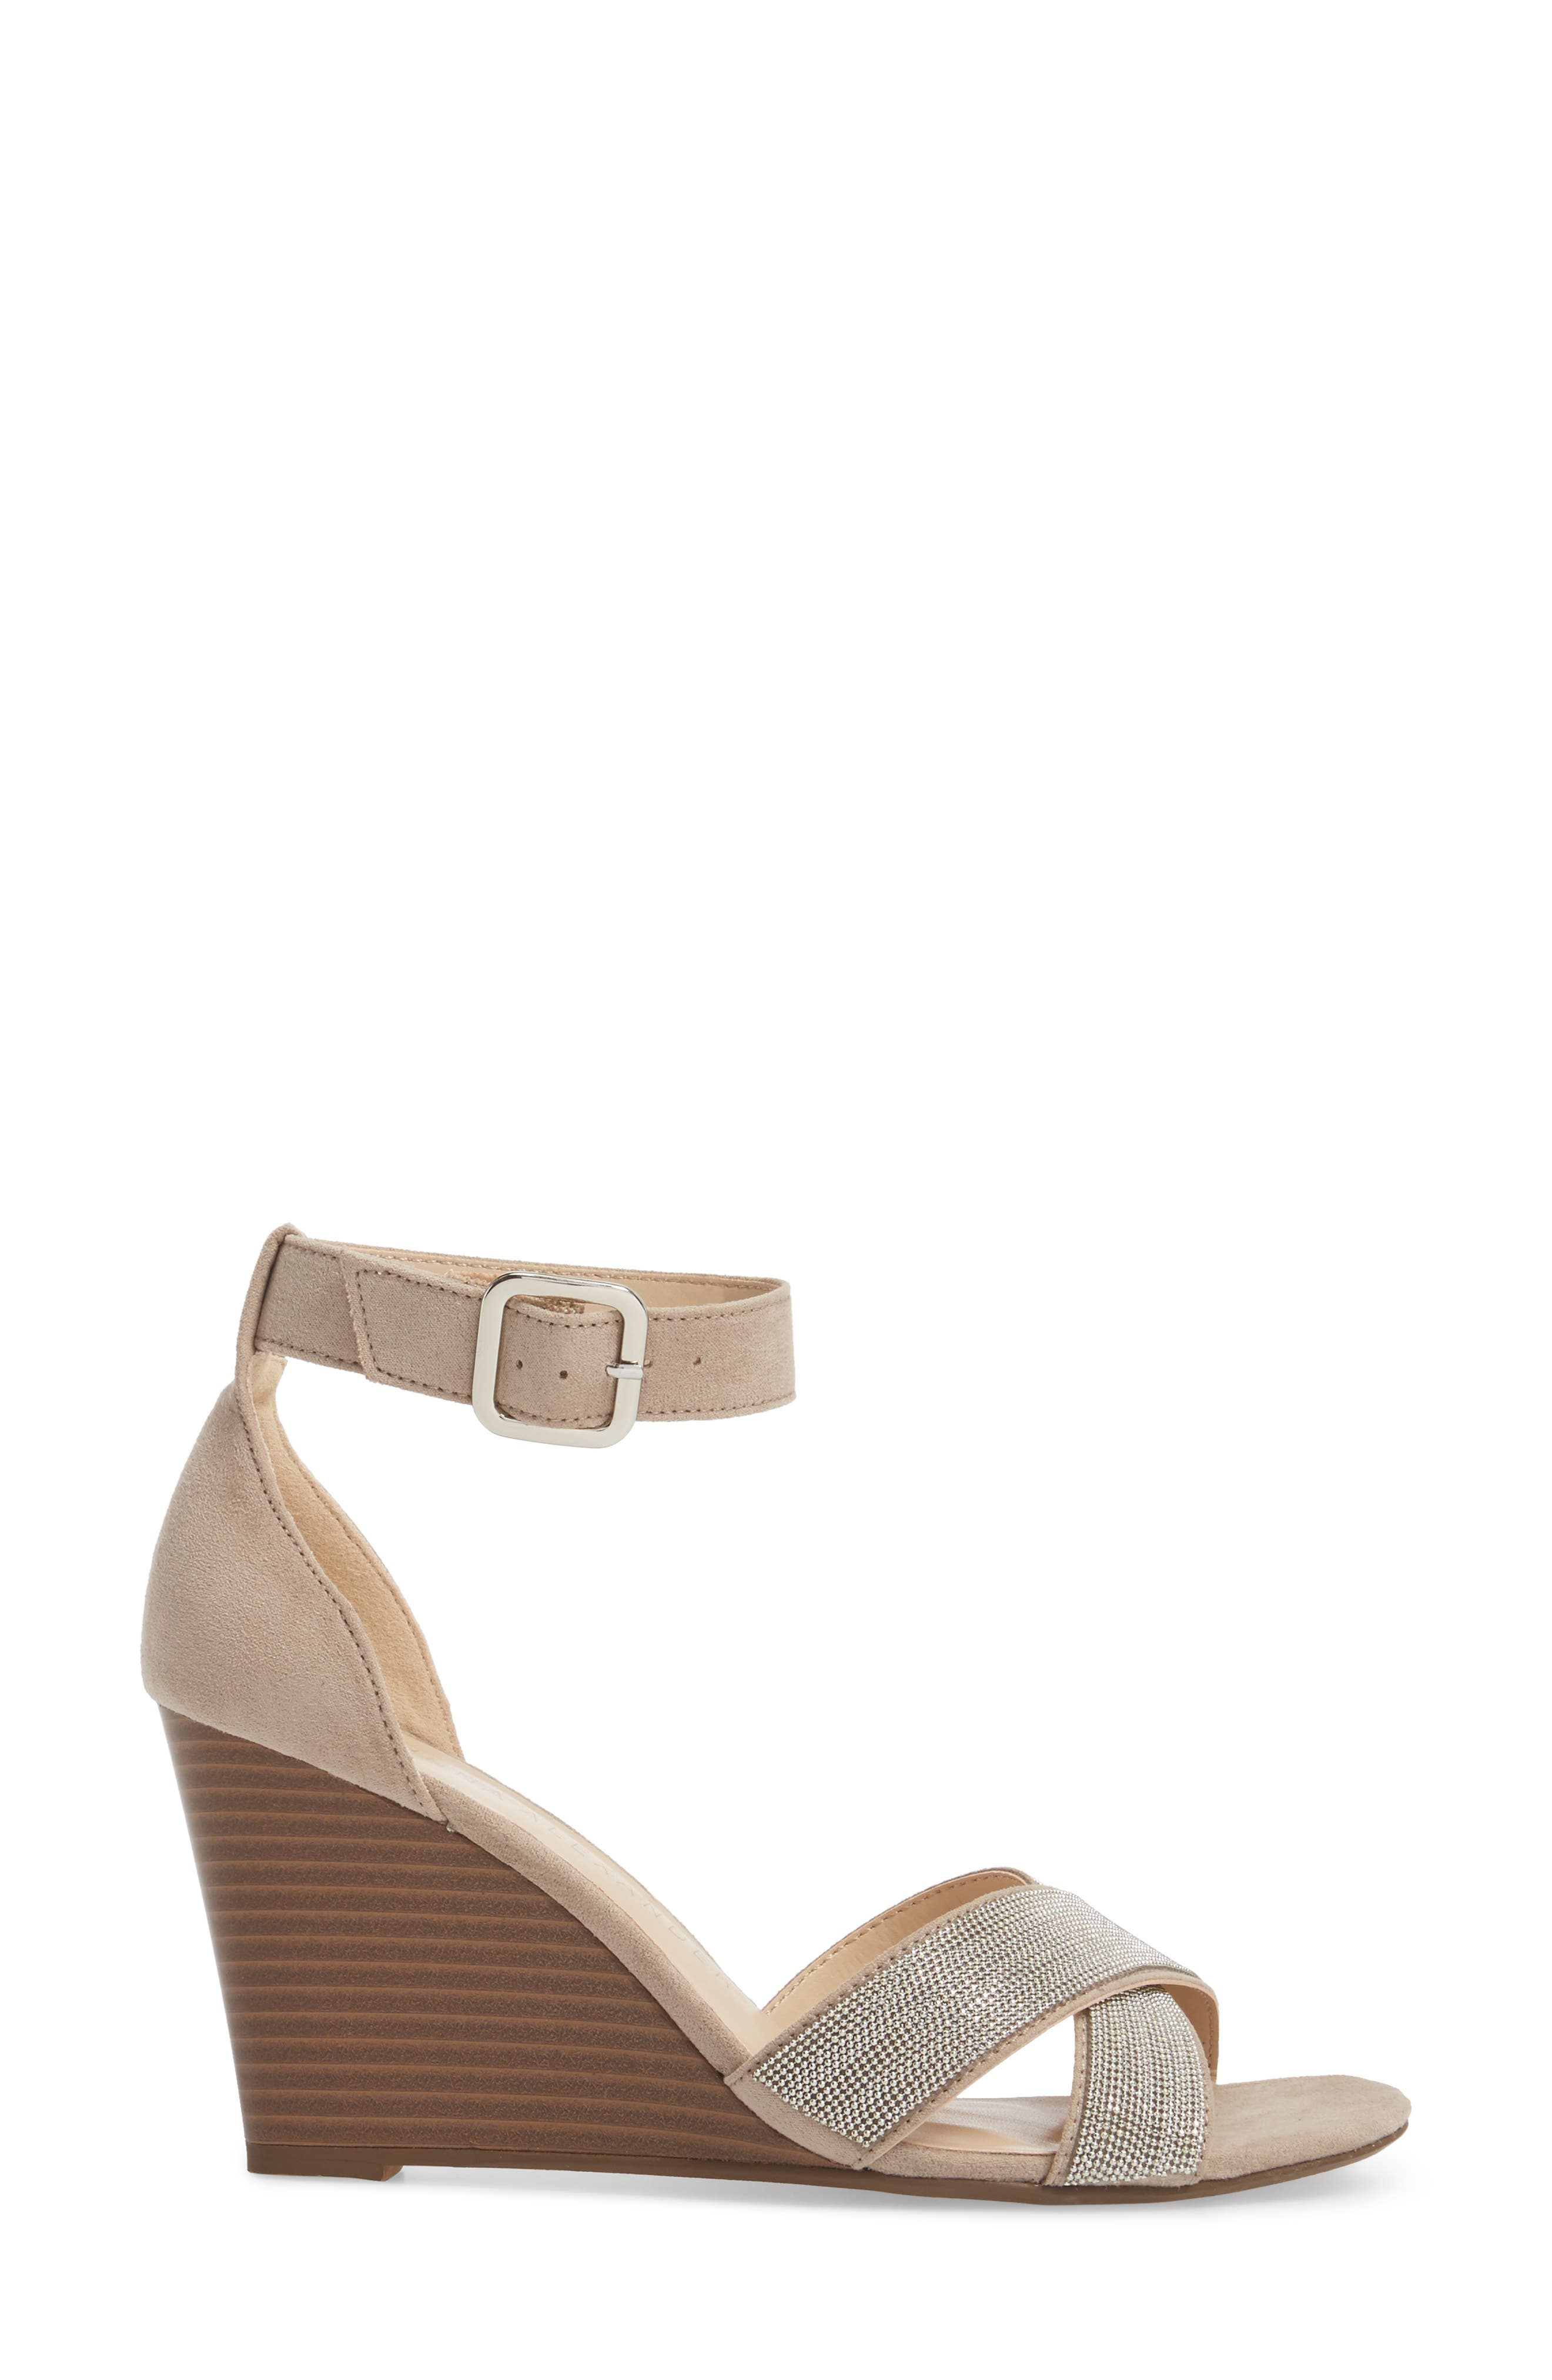 Zorra Wedge Sandal,                             Alternate thumbnail 3, color,                             TAUPE SUEDE